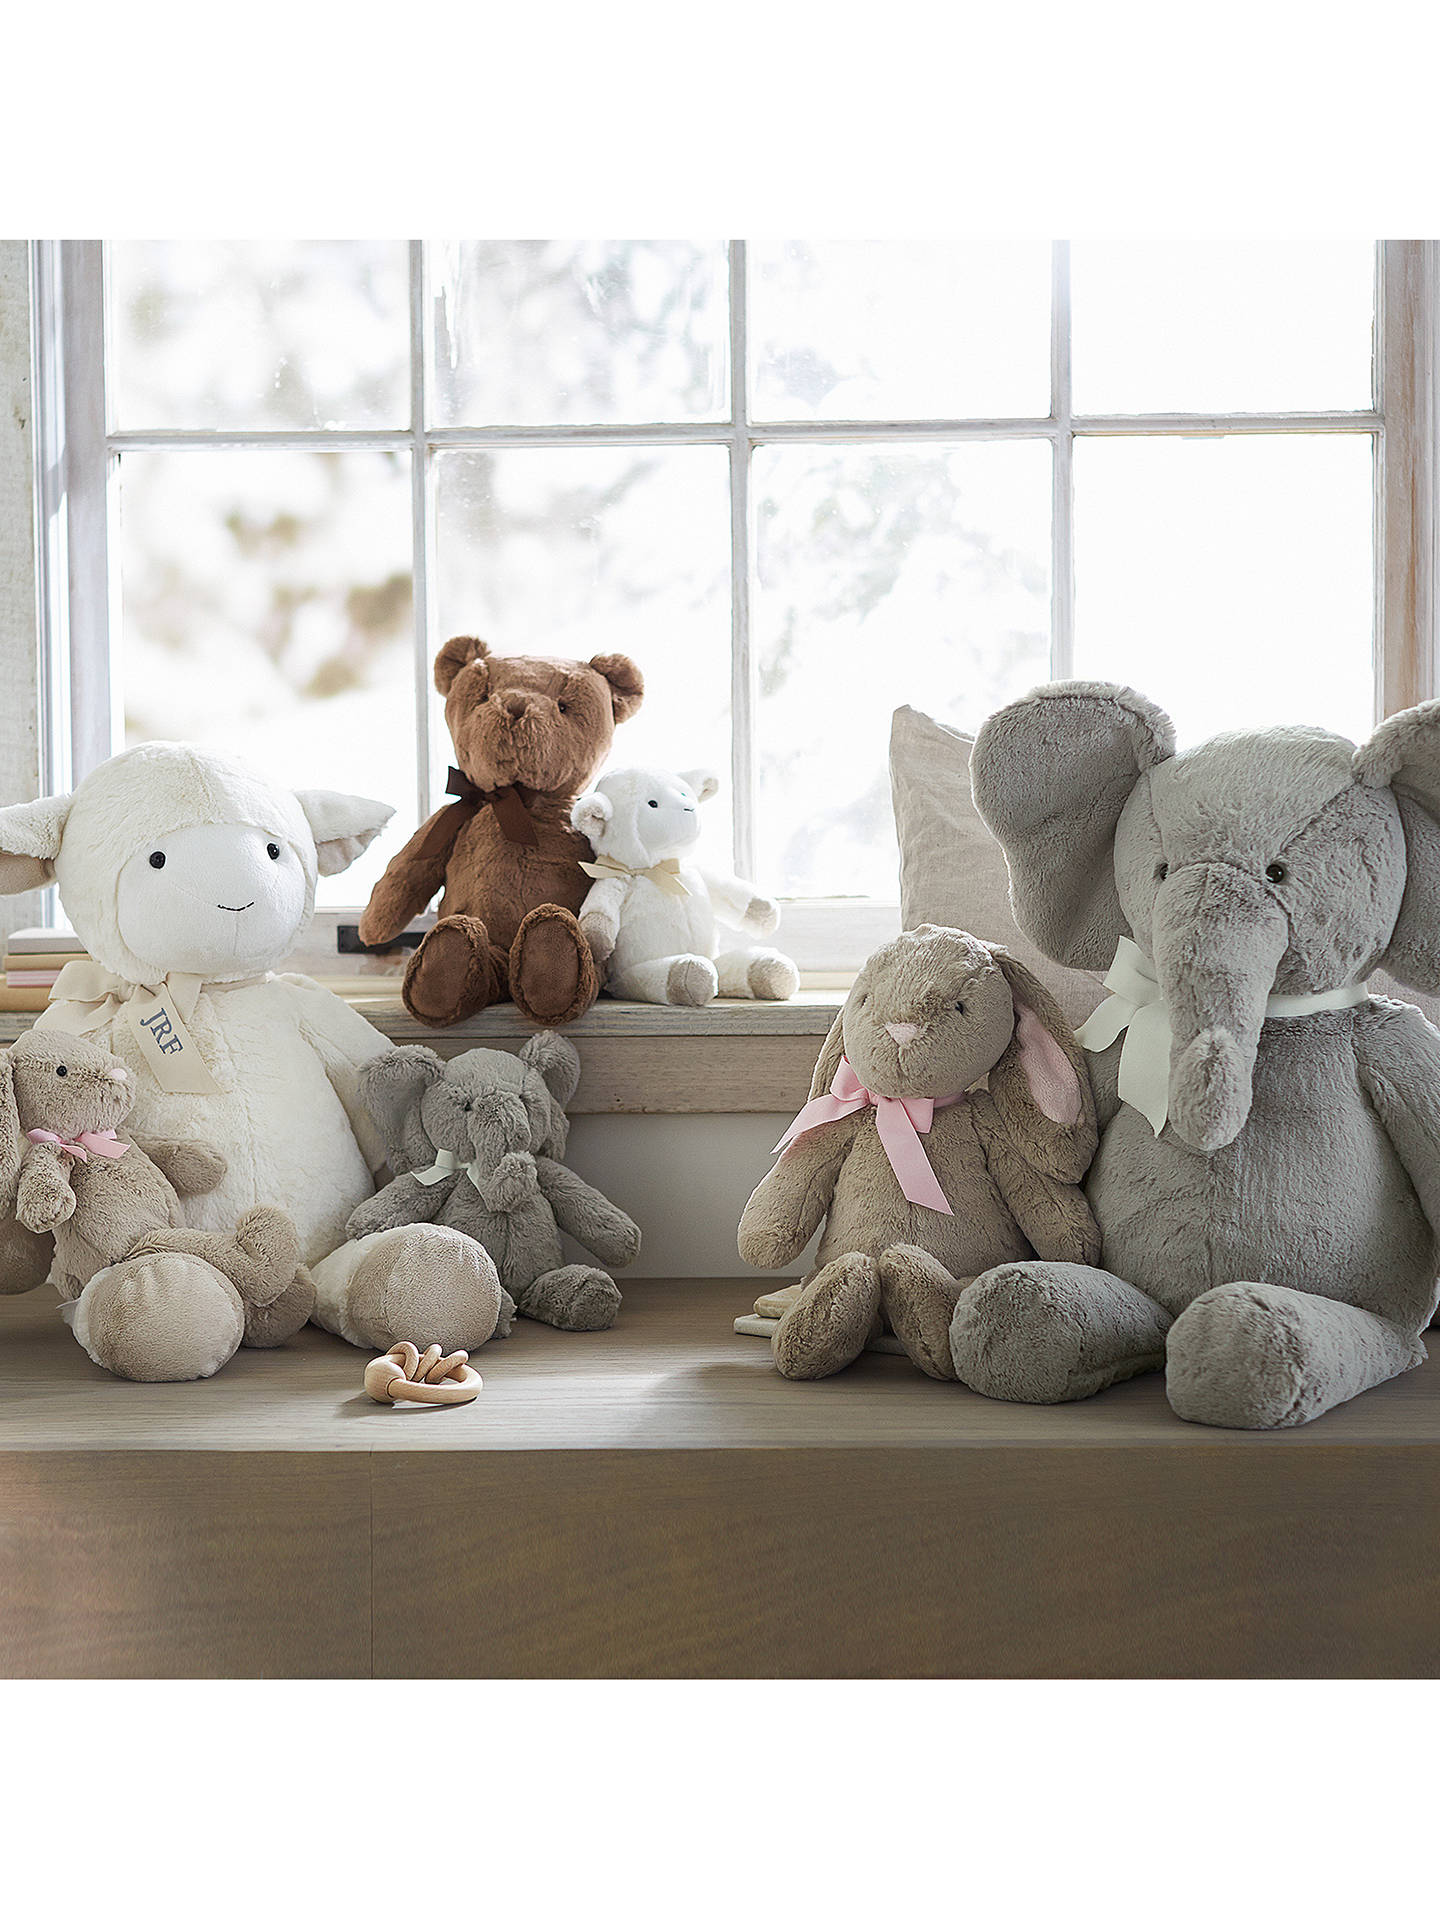 BuyPottery Barn Kids Plush Elephant Soft Toy, Small Online at johnlewis.com